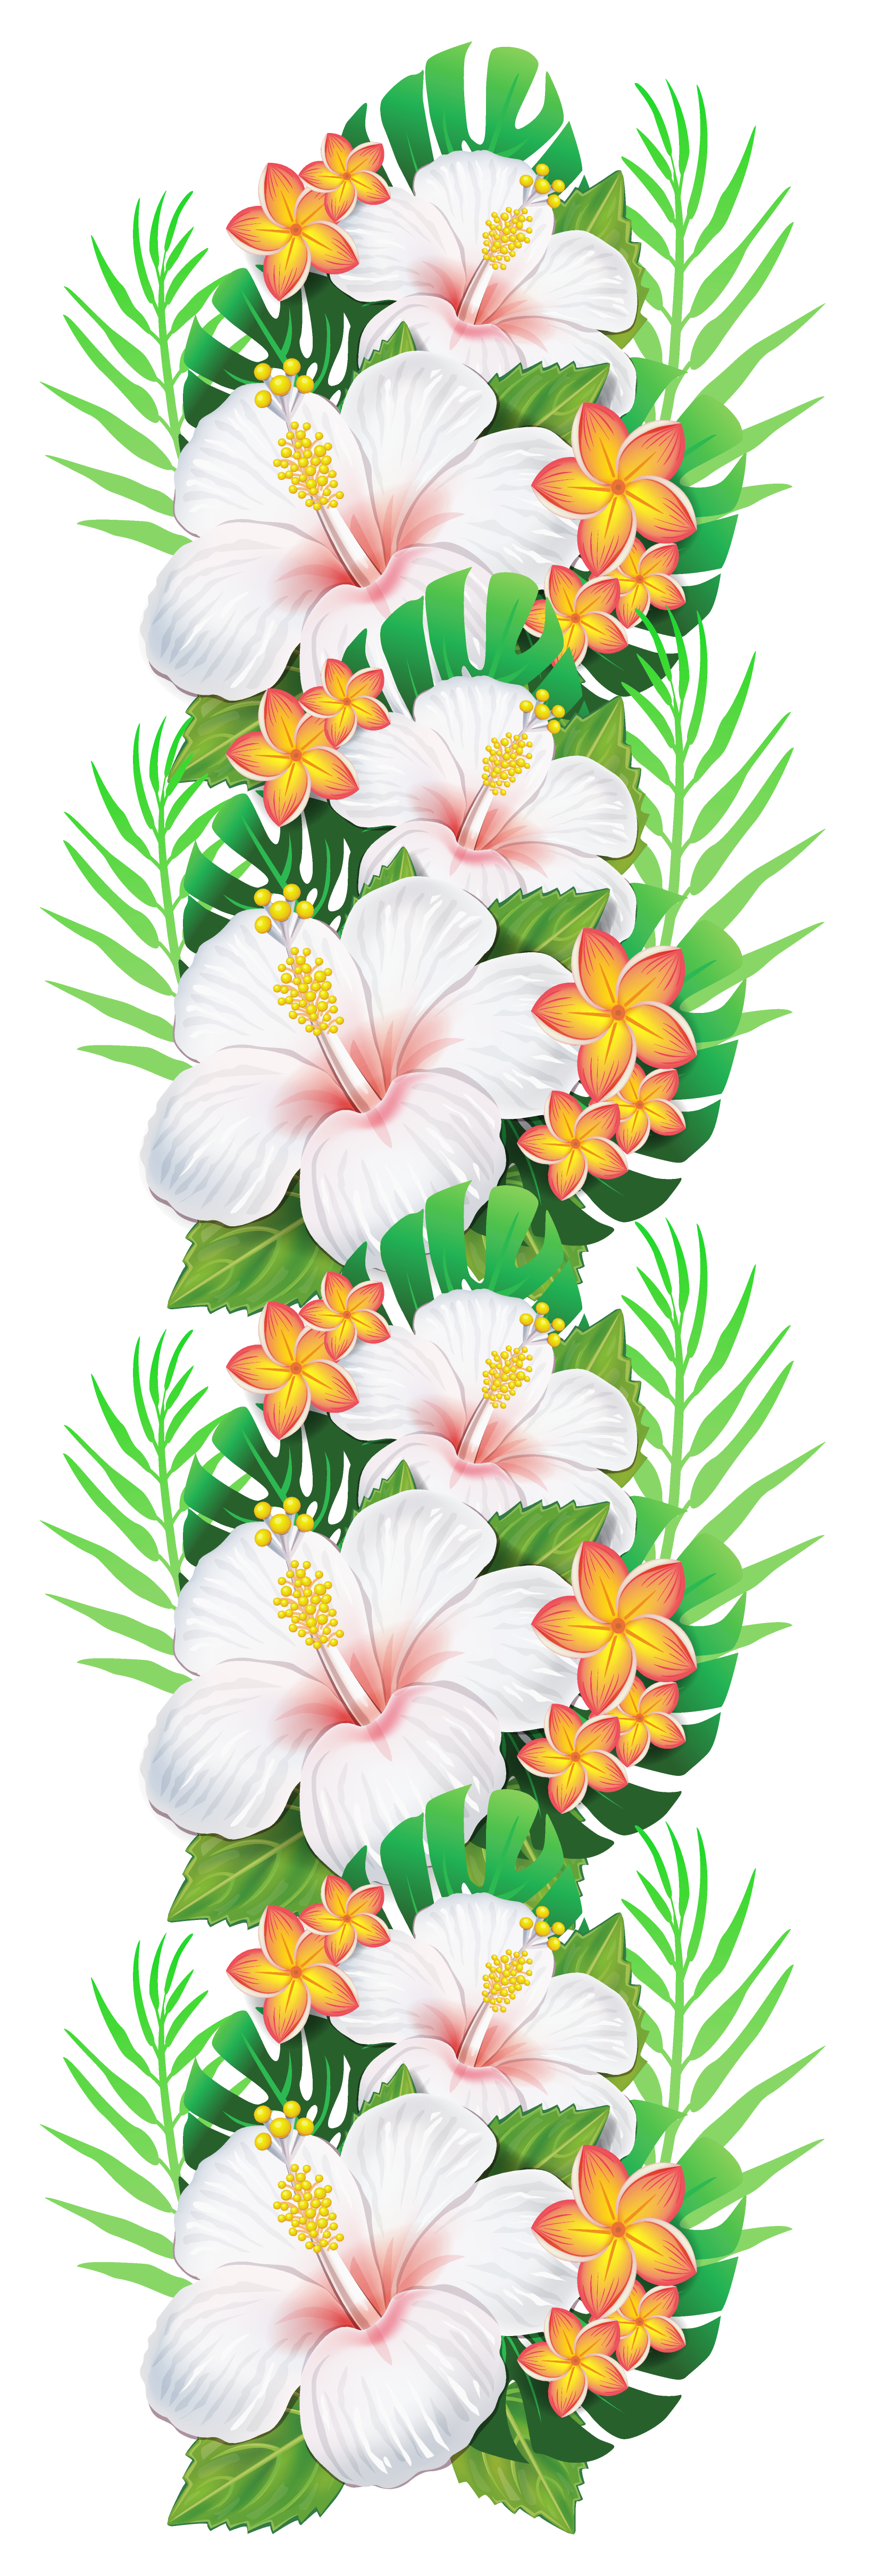 Hawaiian flower clipart border banner black and white Clipart flowers blue jasmine FREE for download on rpelm banner black and white